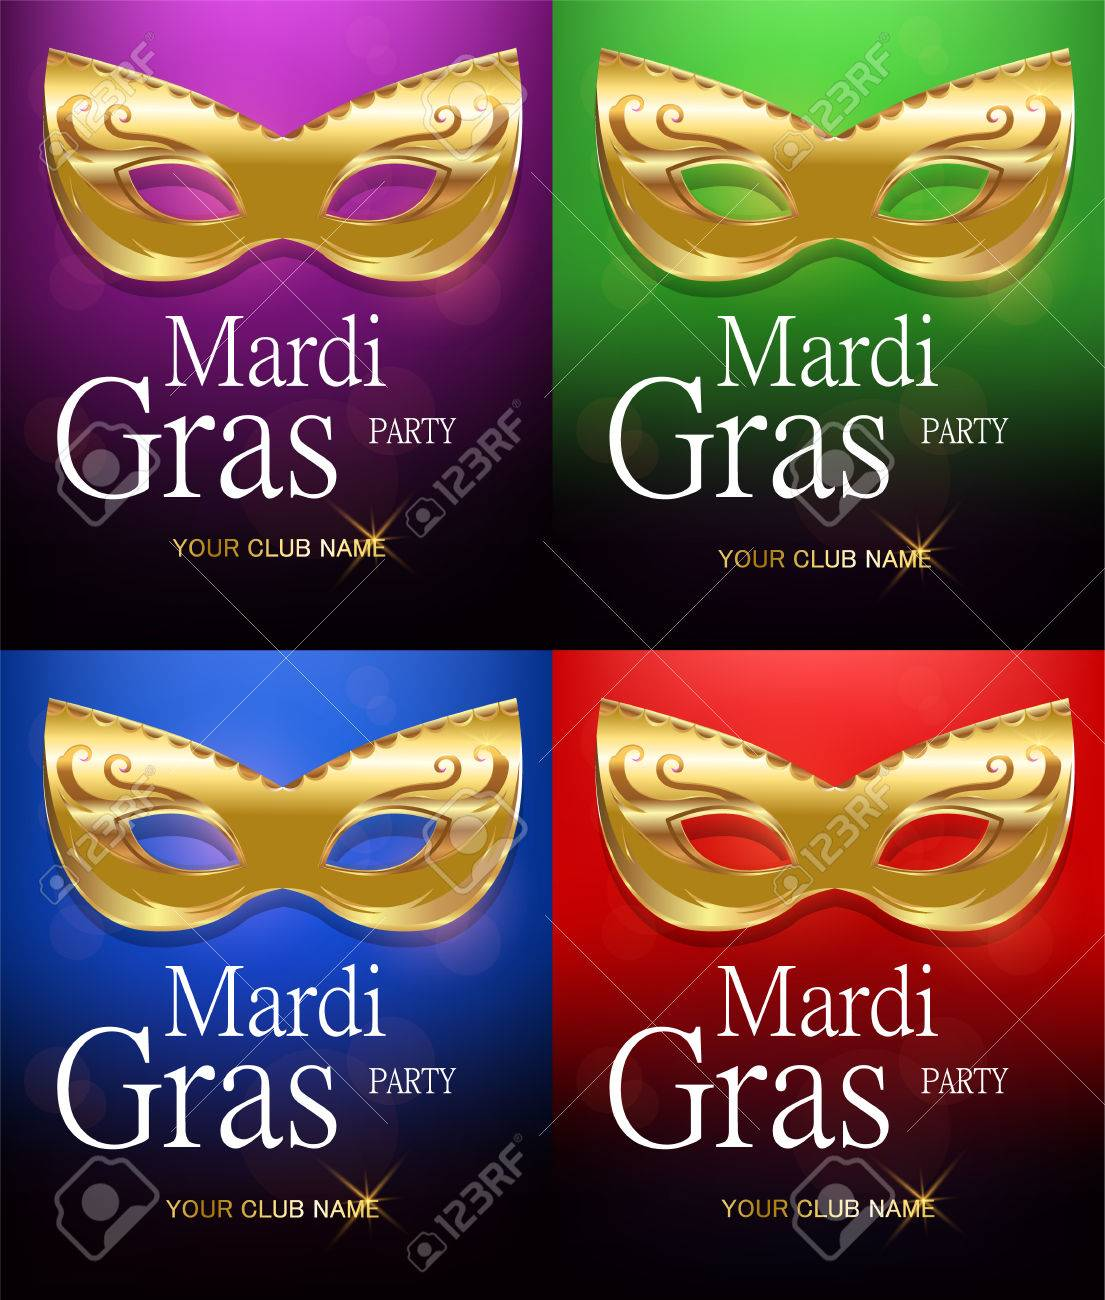 Mardi Gras Set Of Golden Carnival Masks With Ornaments For Poster ...